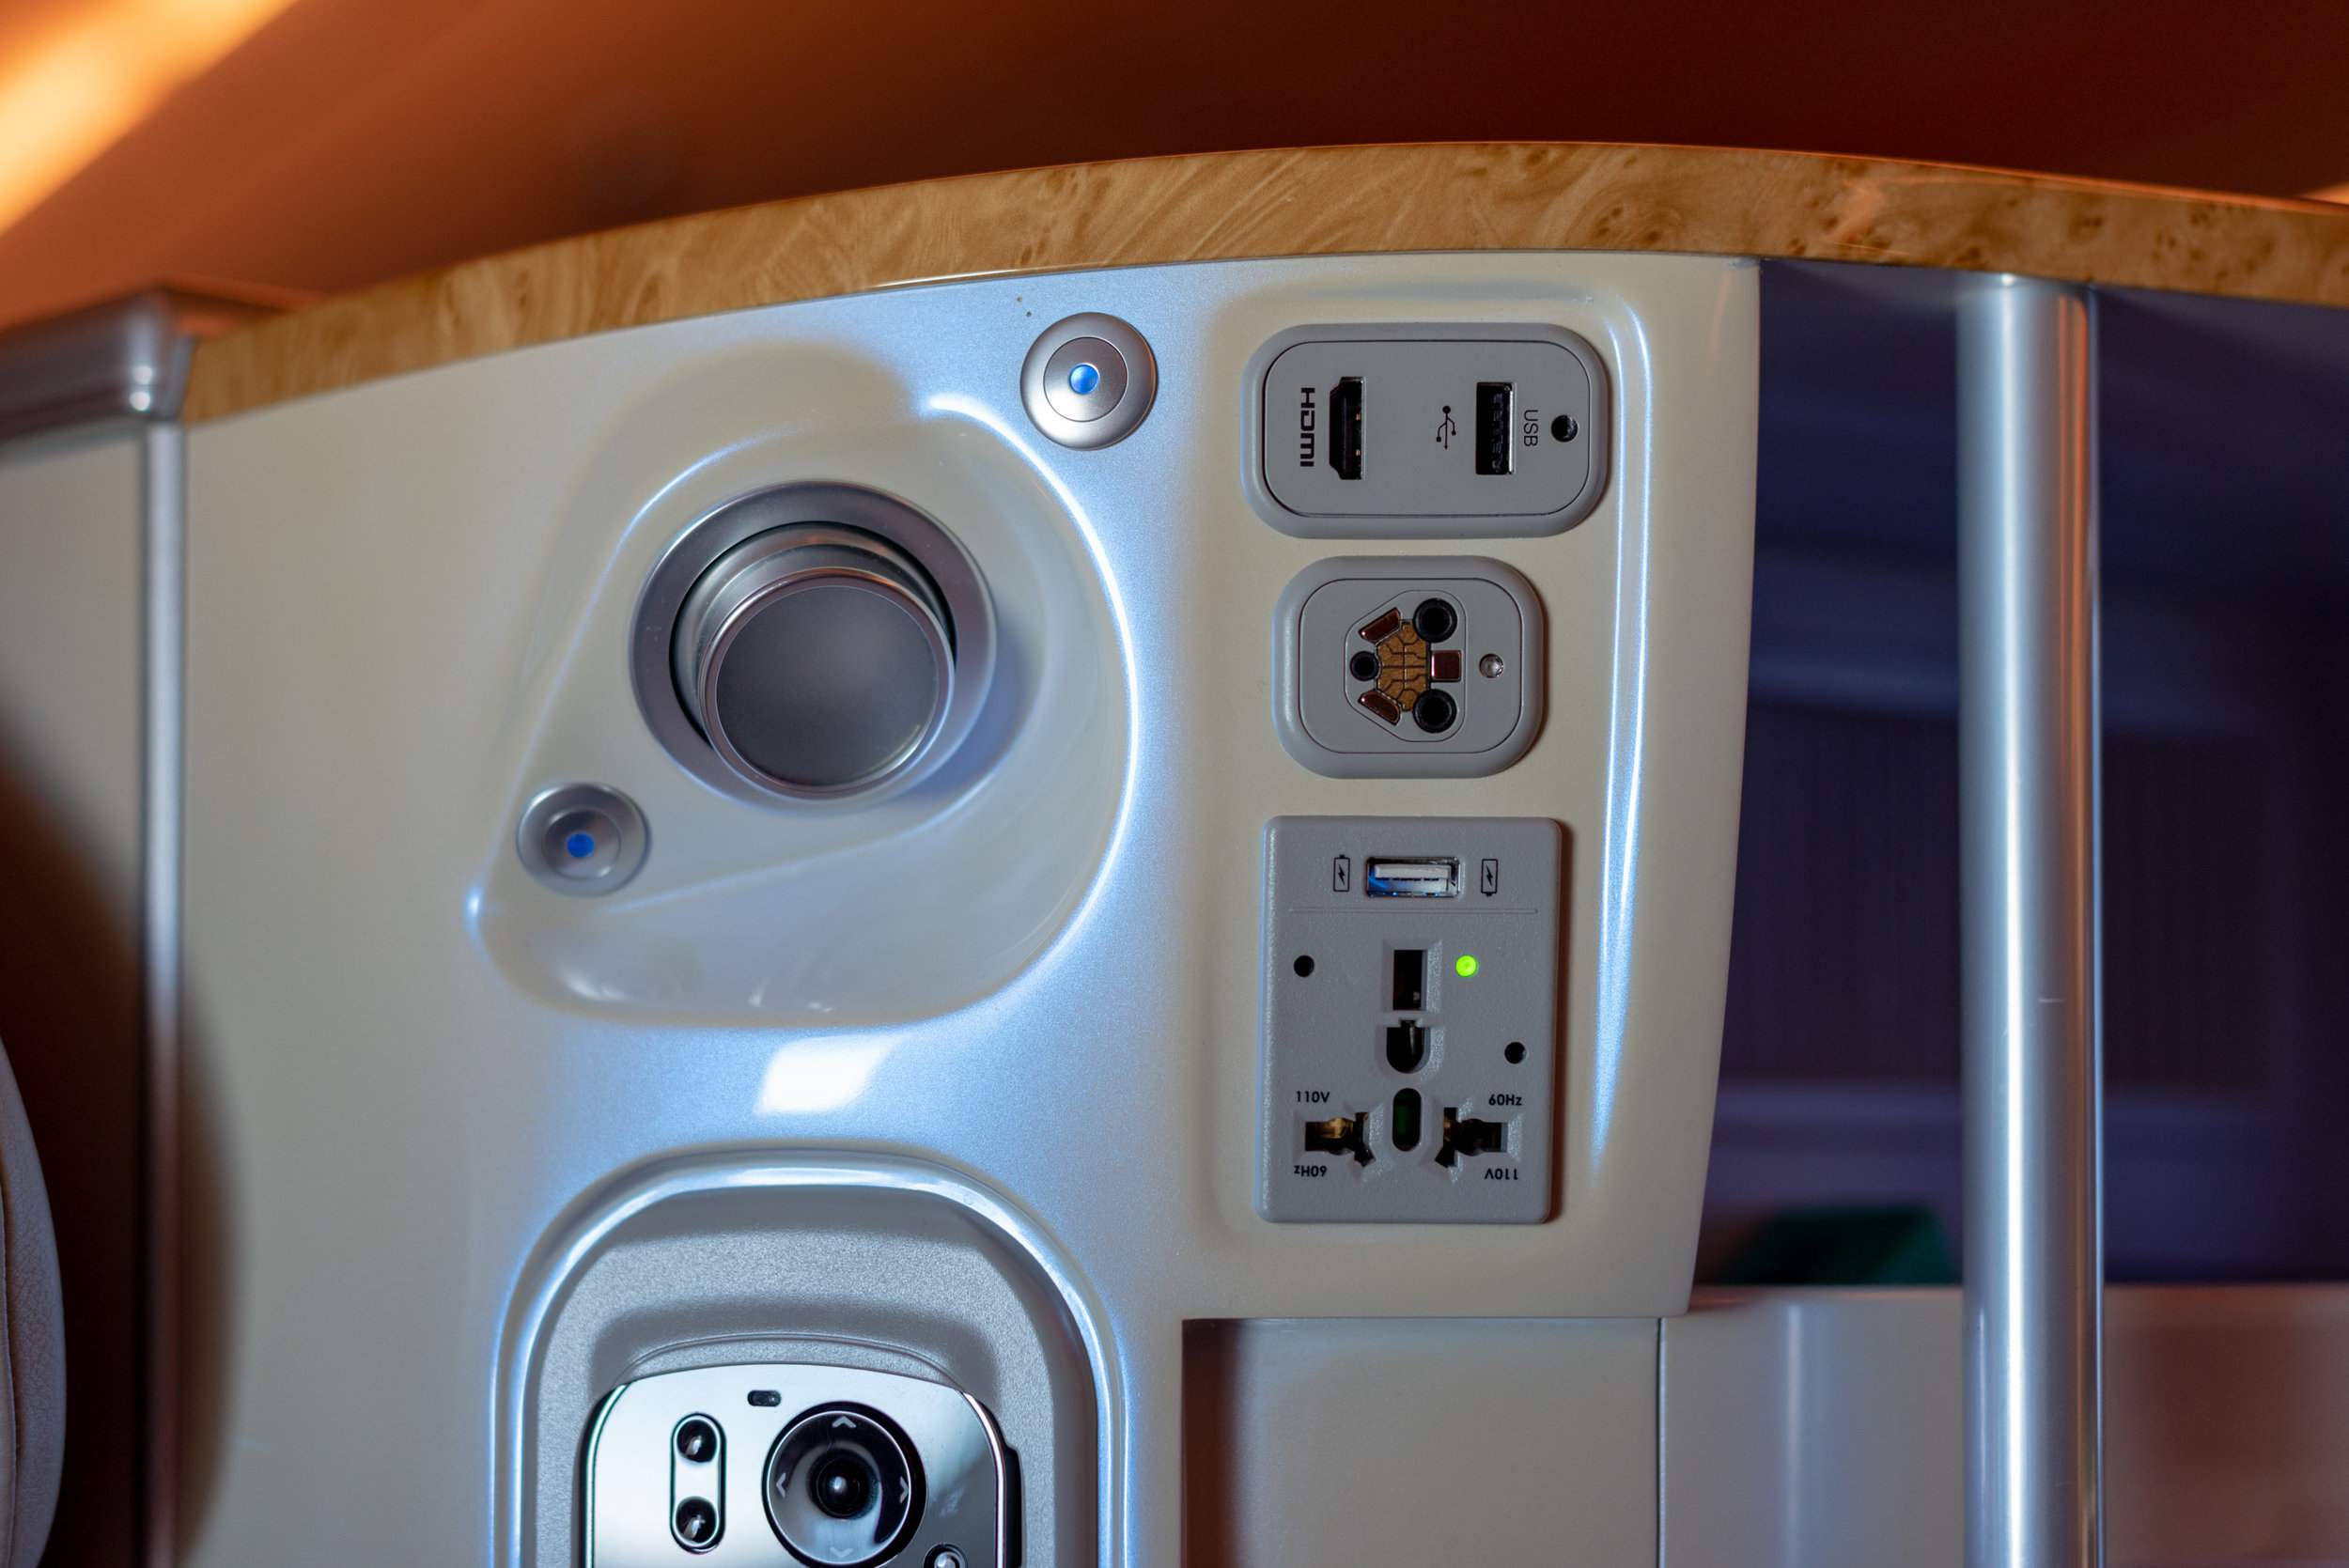 Universal Power Outlet and USB Charging Ports  Emirates Business Class EK203 A380-800 - DXB to JFK